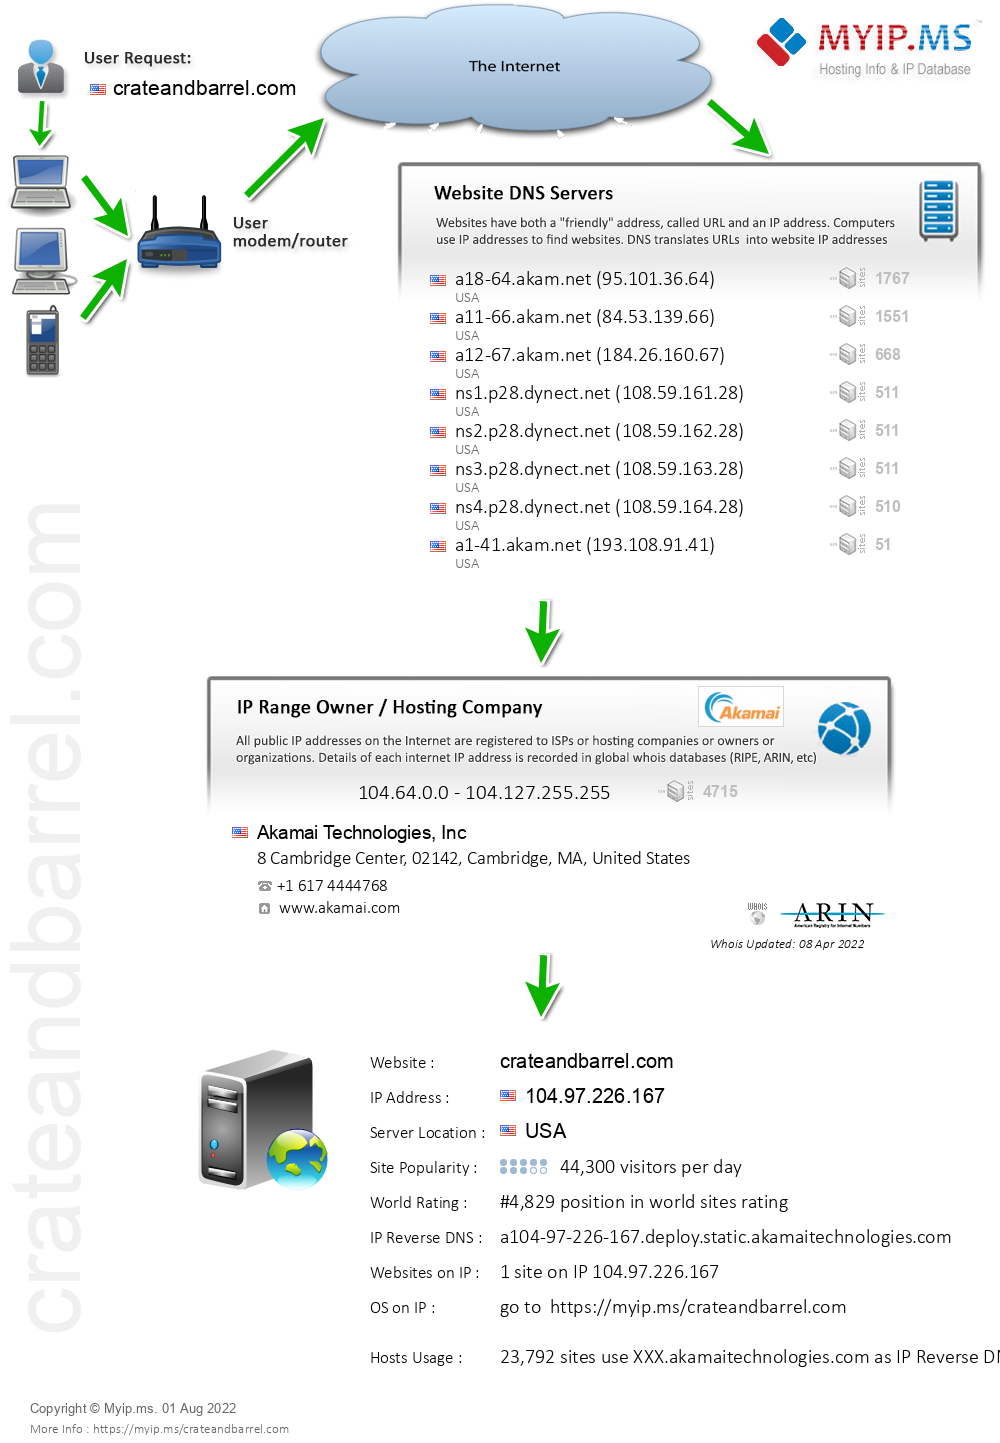 Crateandbarrel.com - Website Hosting Visual IP Diagram